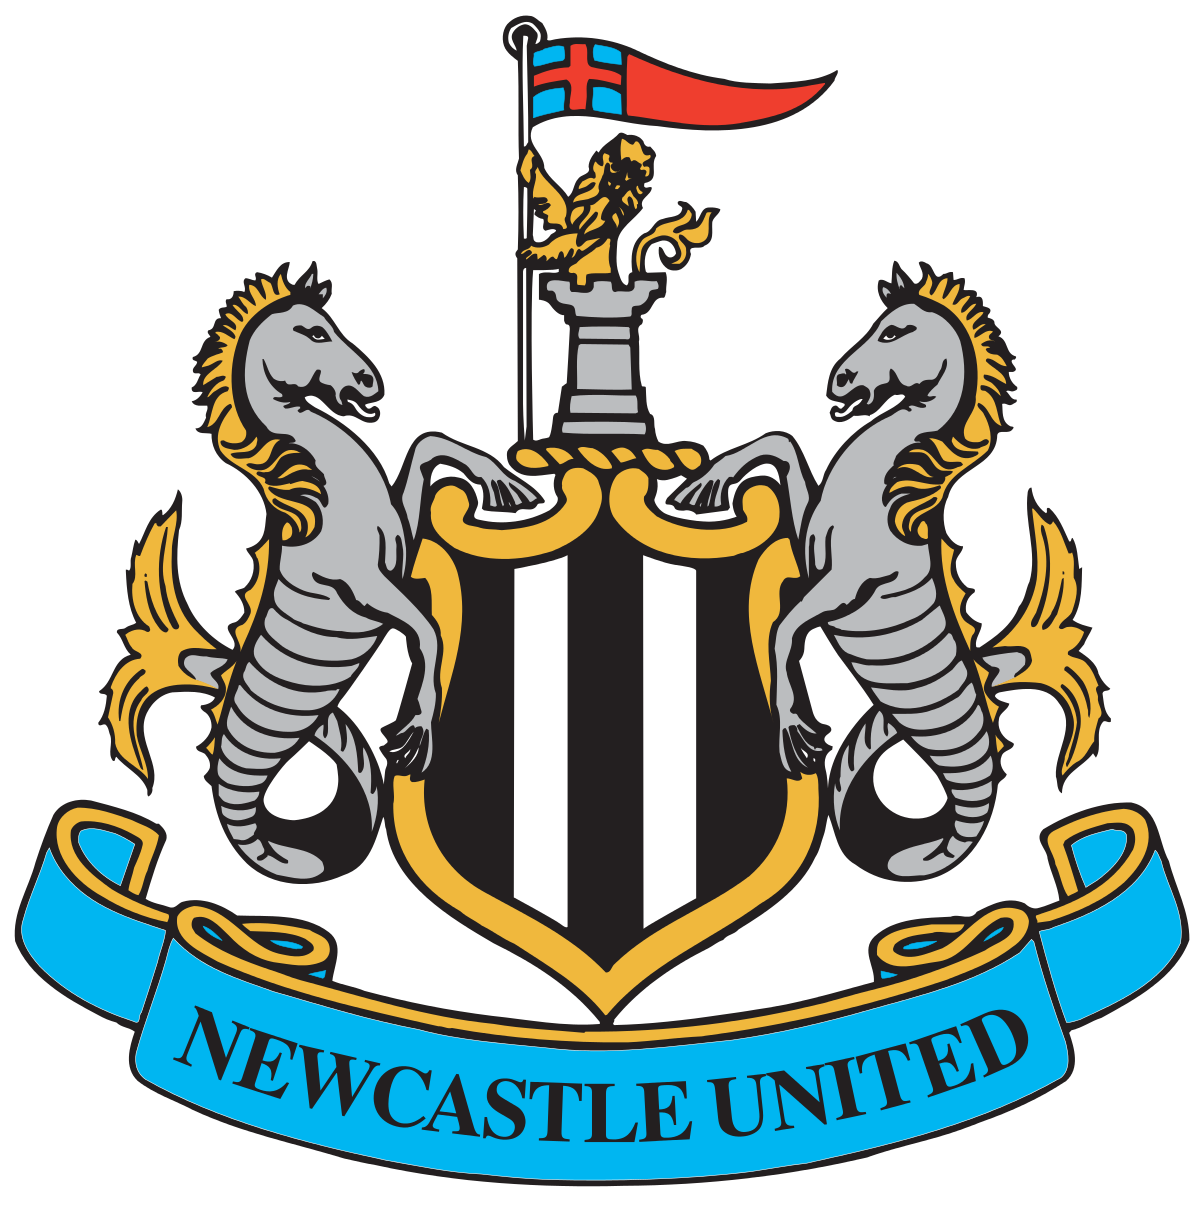 Watching football on tv clipart graphic royalty free library Newcastle United F.C. - Wikipedia graphic royalty free library